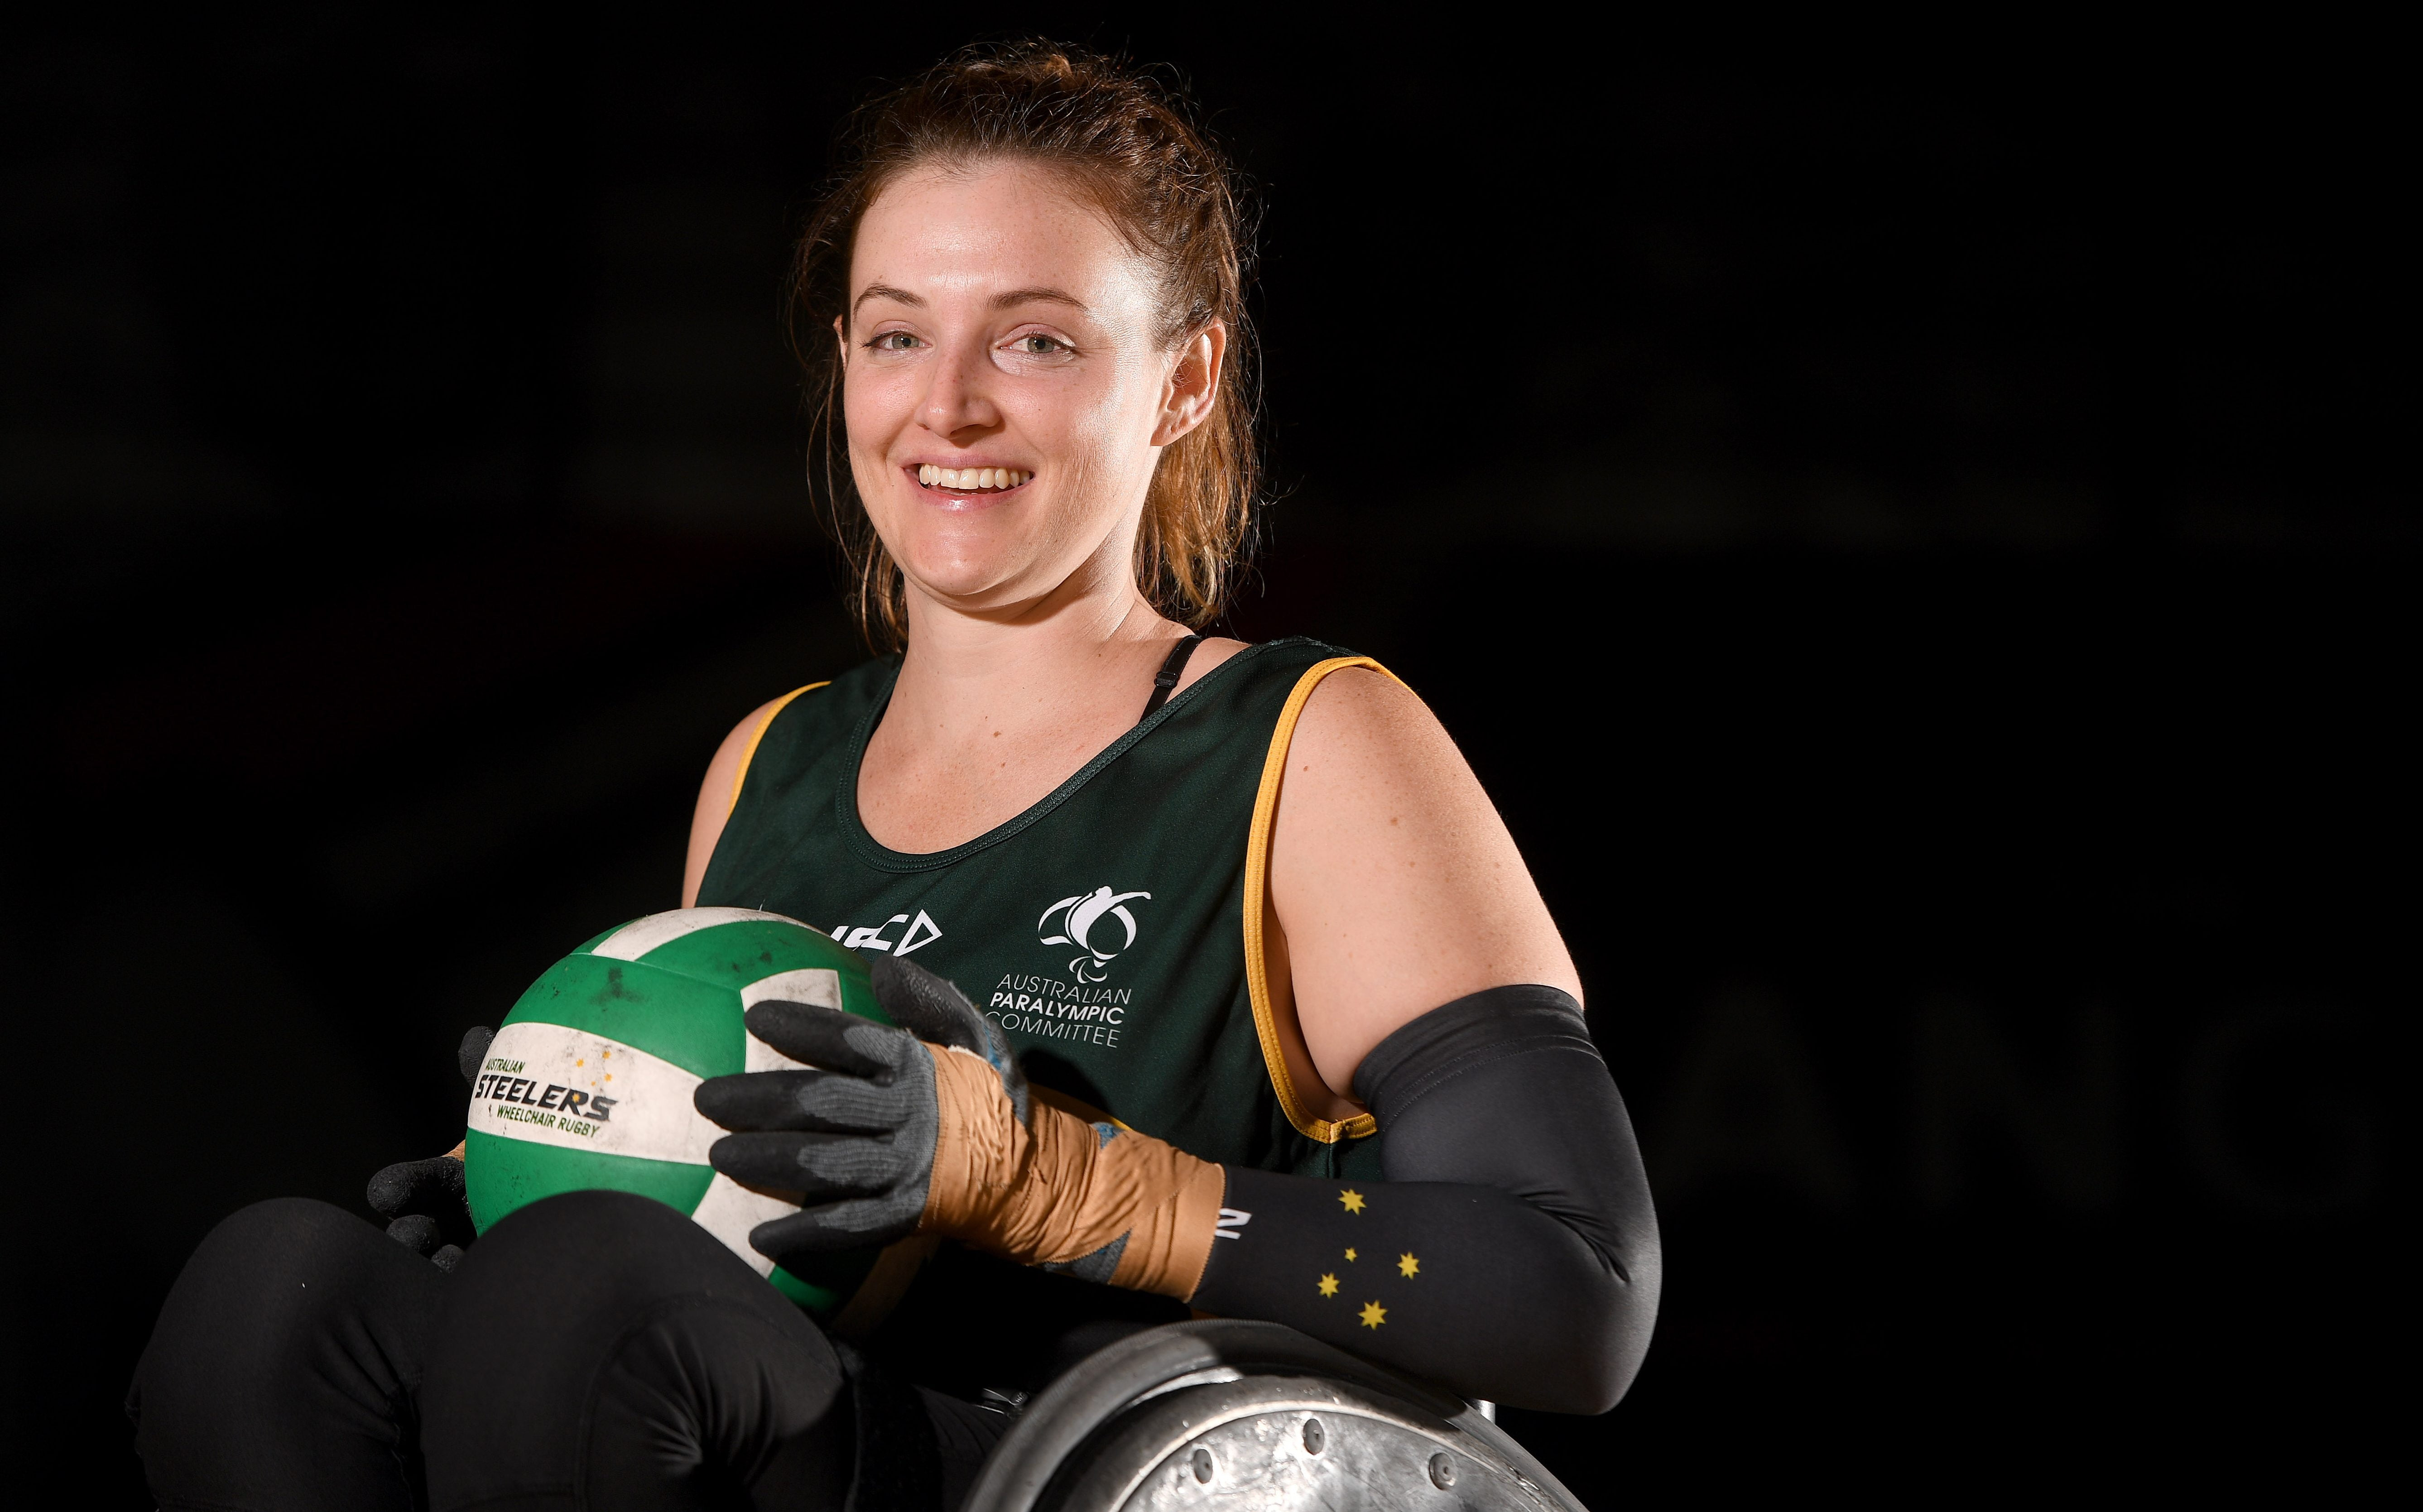 Graham ready for Steelers debut and historic moment for women's sport